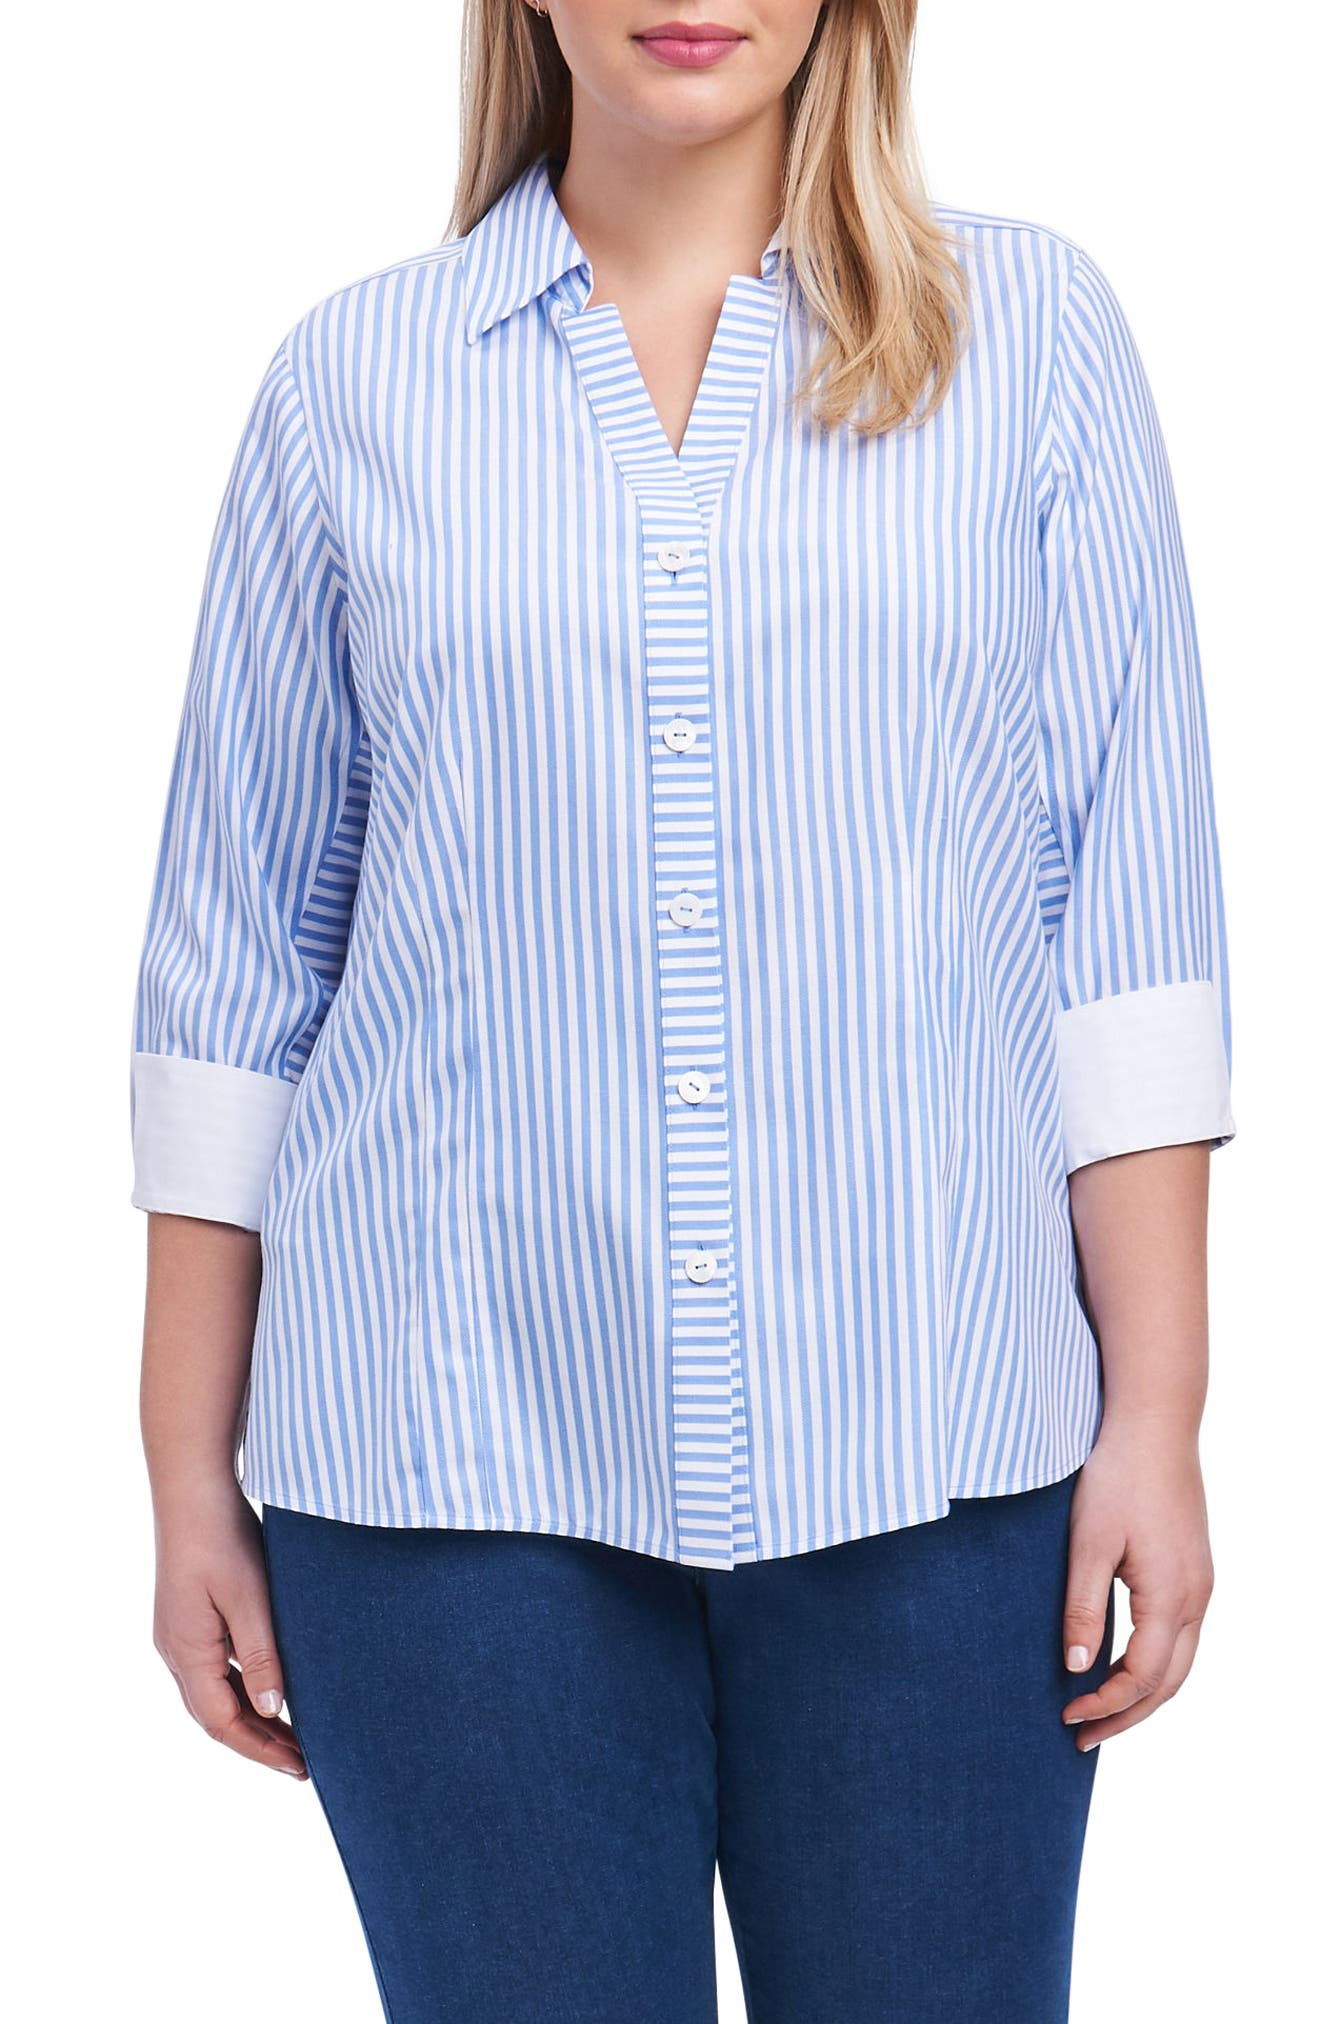 Alternate Image 1 Selected - Foxcroft Taylor Button Down Shirt (Plus Size)